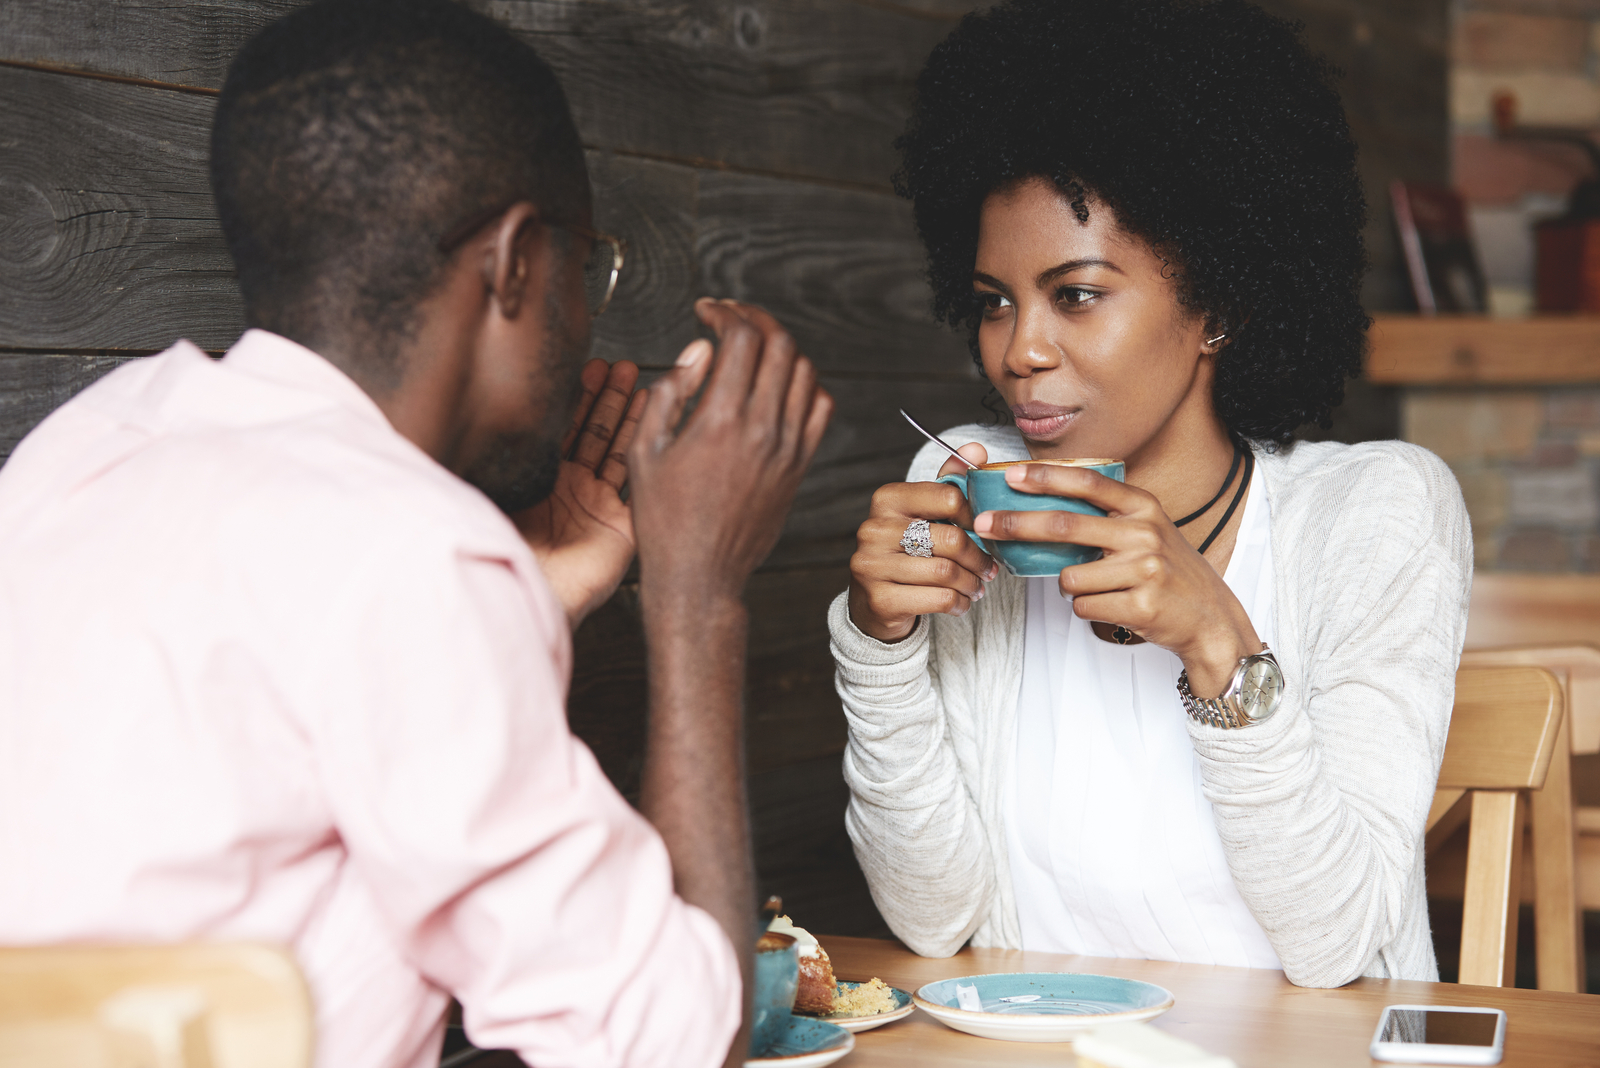 a woman with frizzy hair drinks coffee and talks to a man